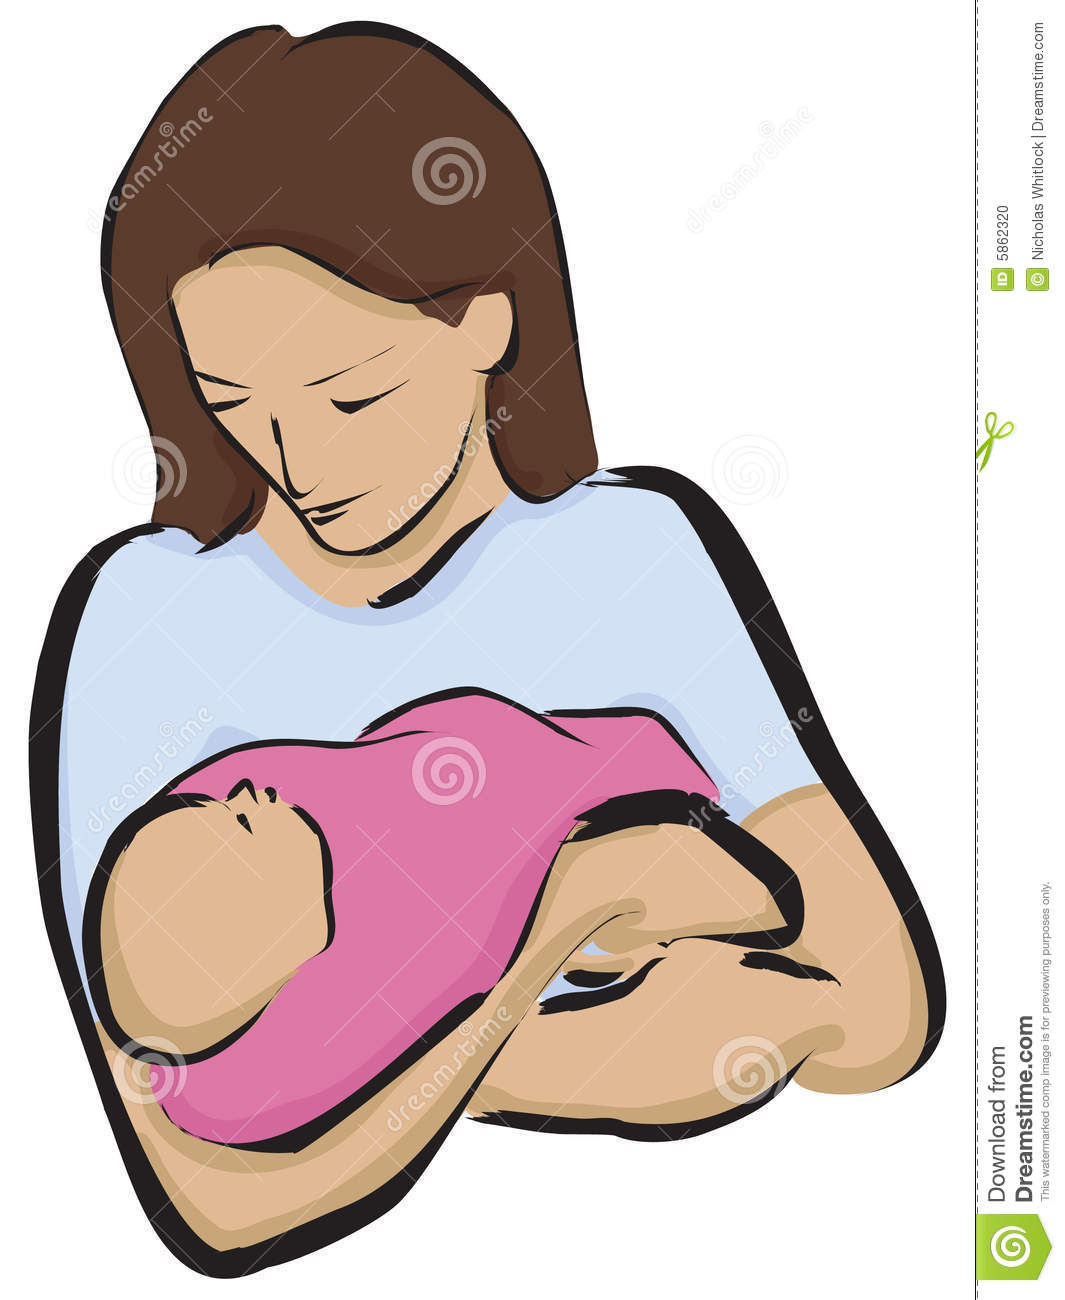 Caring clipart caring mom. Newborn and mother